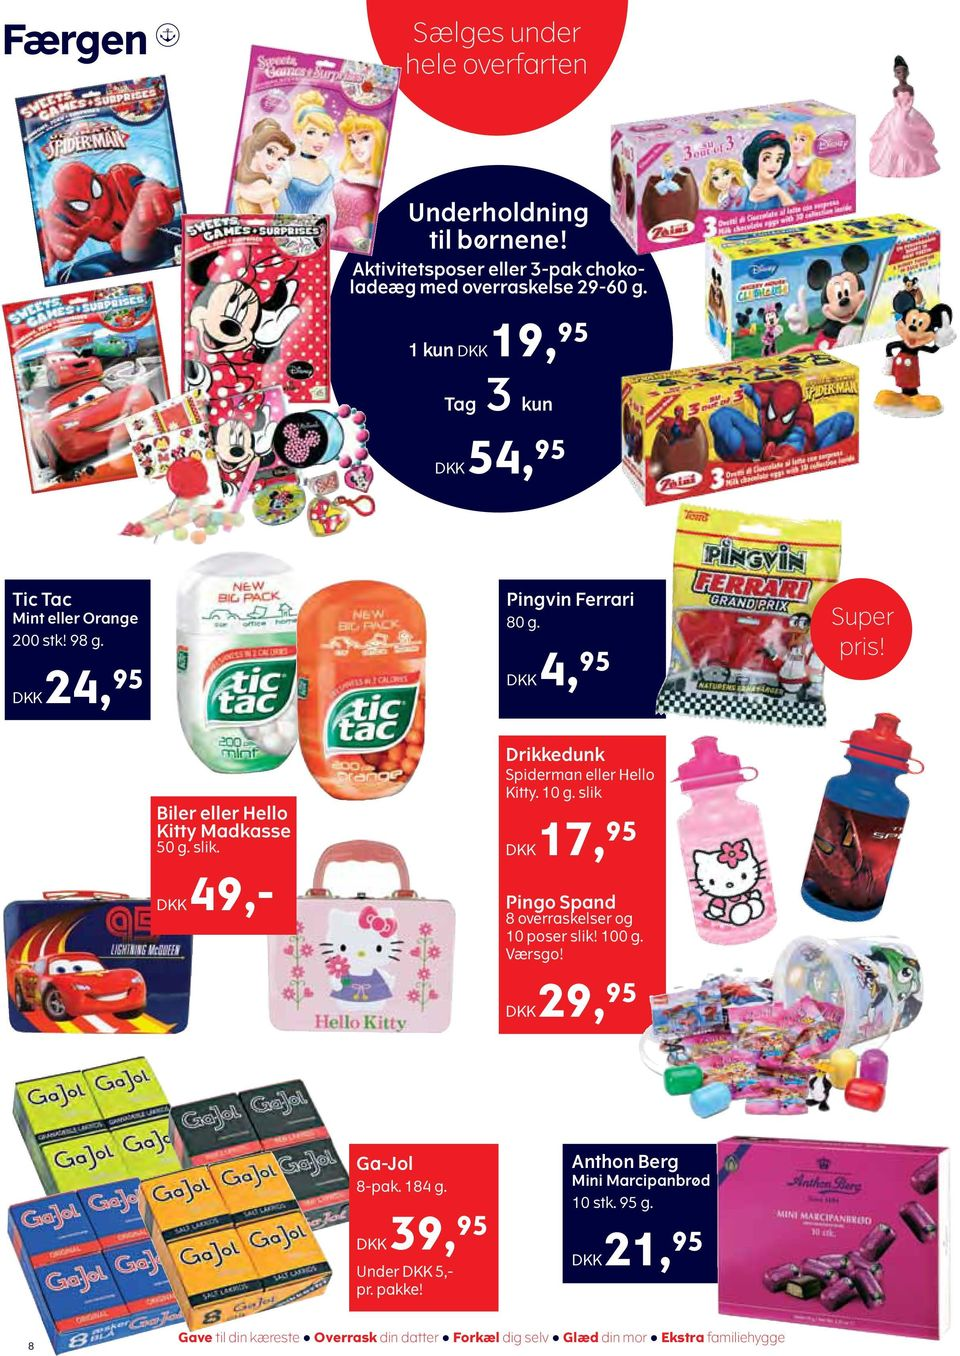 Biler eller Hello Kitty Madkasse 50 g. slik. DKK 49,- Drikkedunk Spiderman eller Hello Kitty. 10 g.